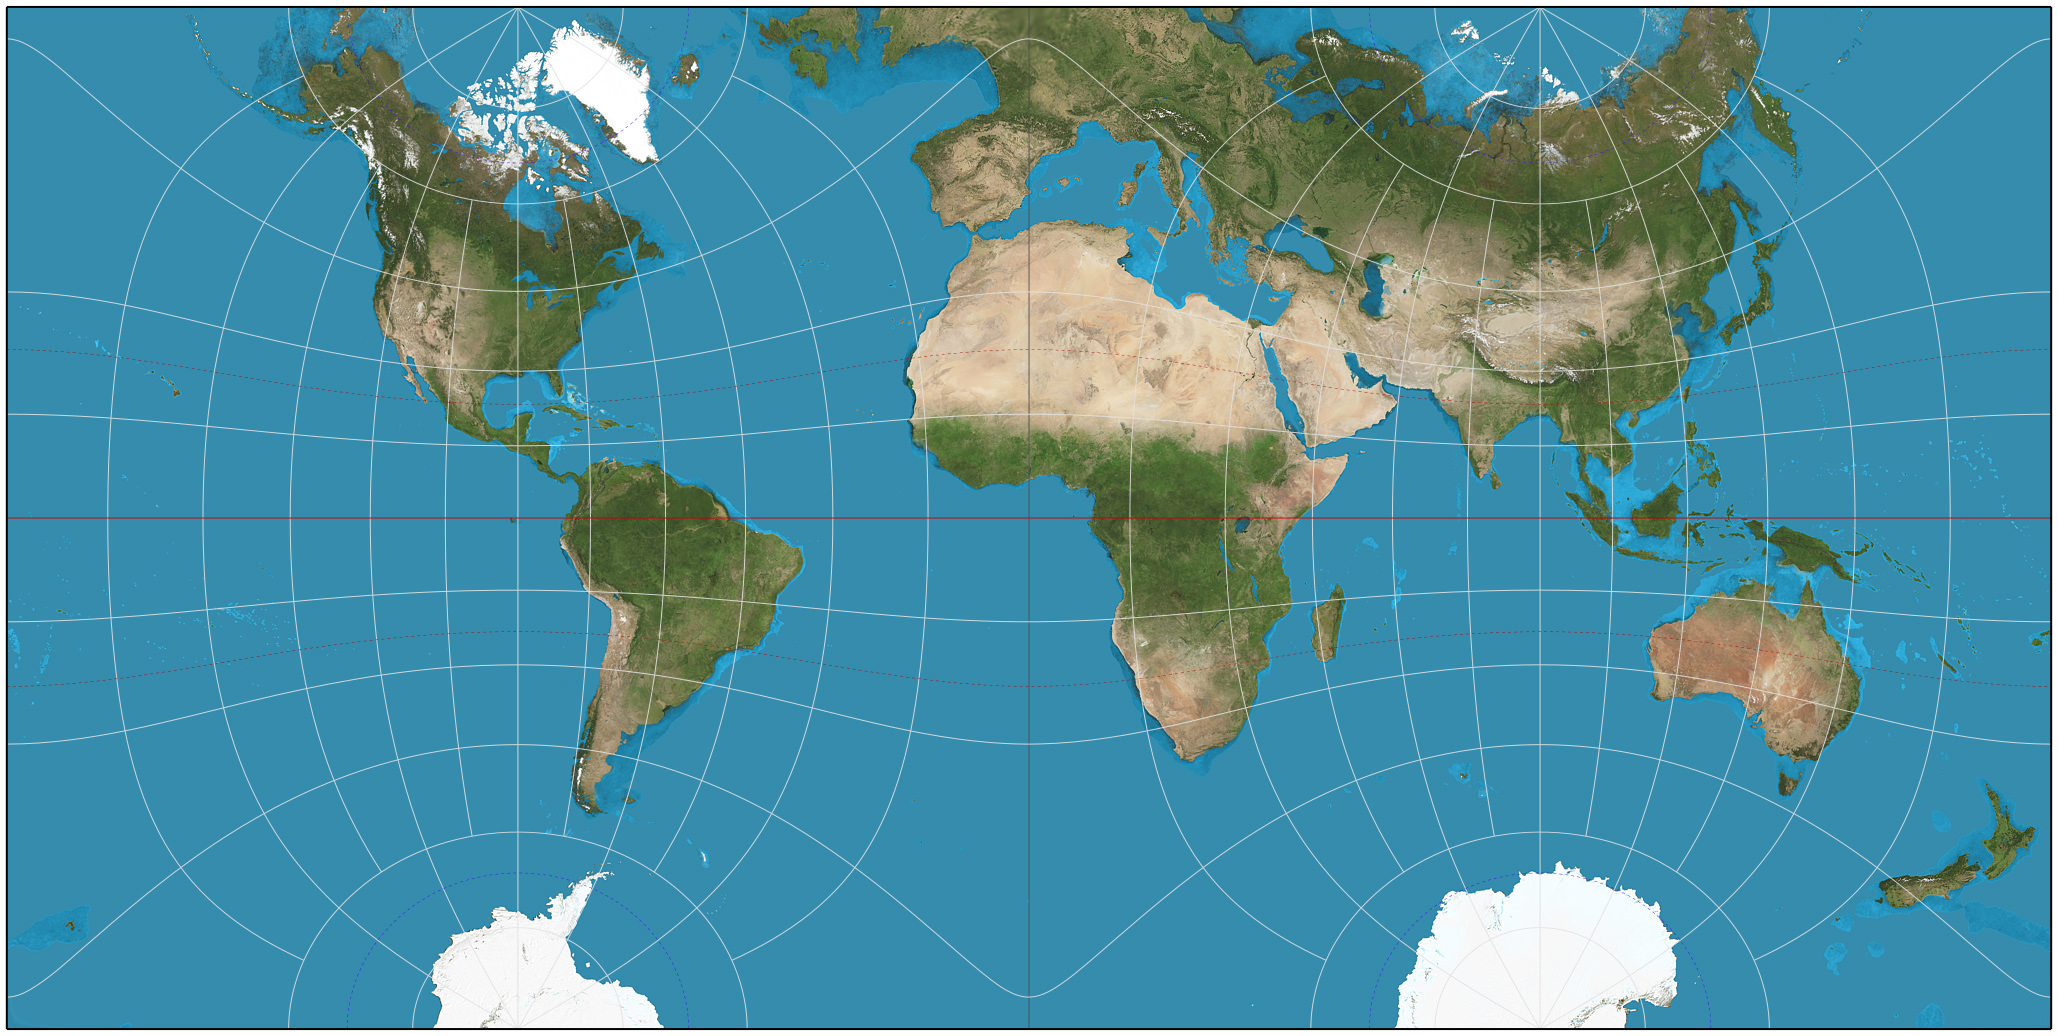 projection map Selecting the right map projection is one of the important first considerations for accurate gis analysis.